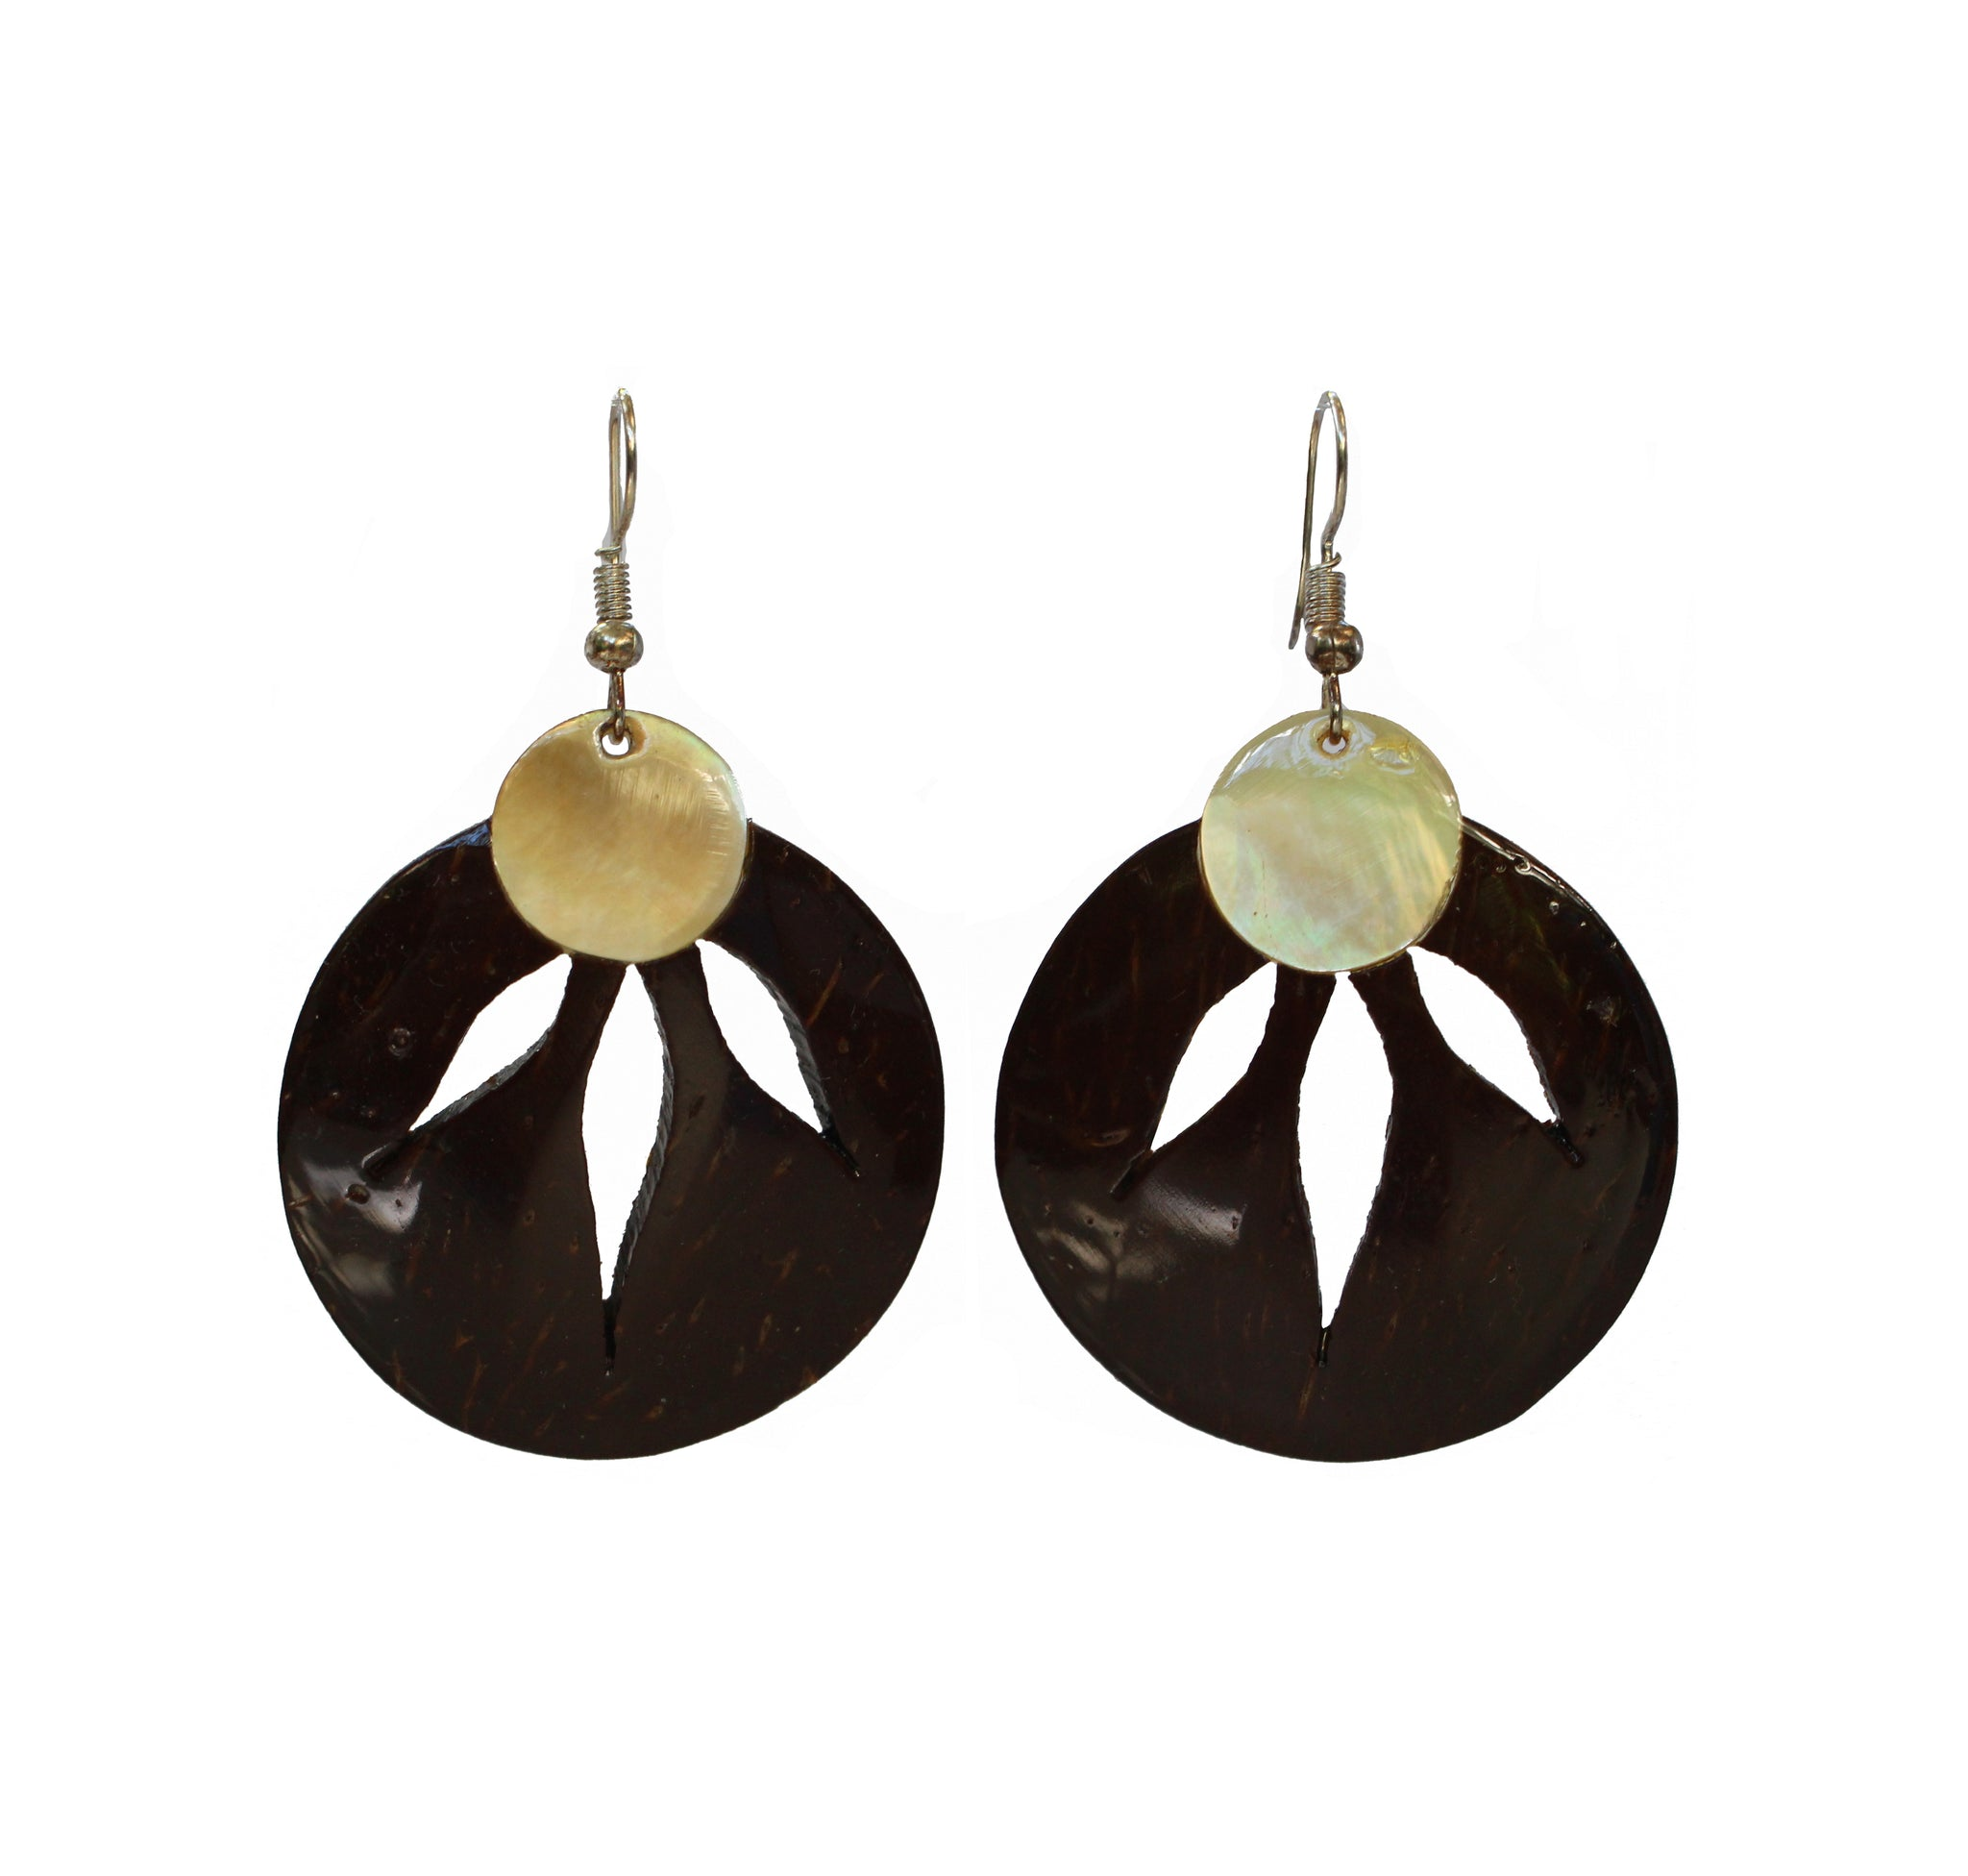 Coconut Earrings - 3 Leaf Mother of Pearl